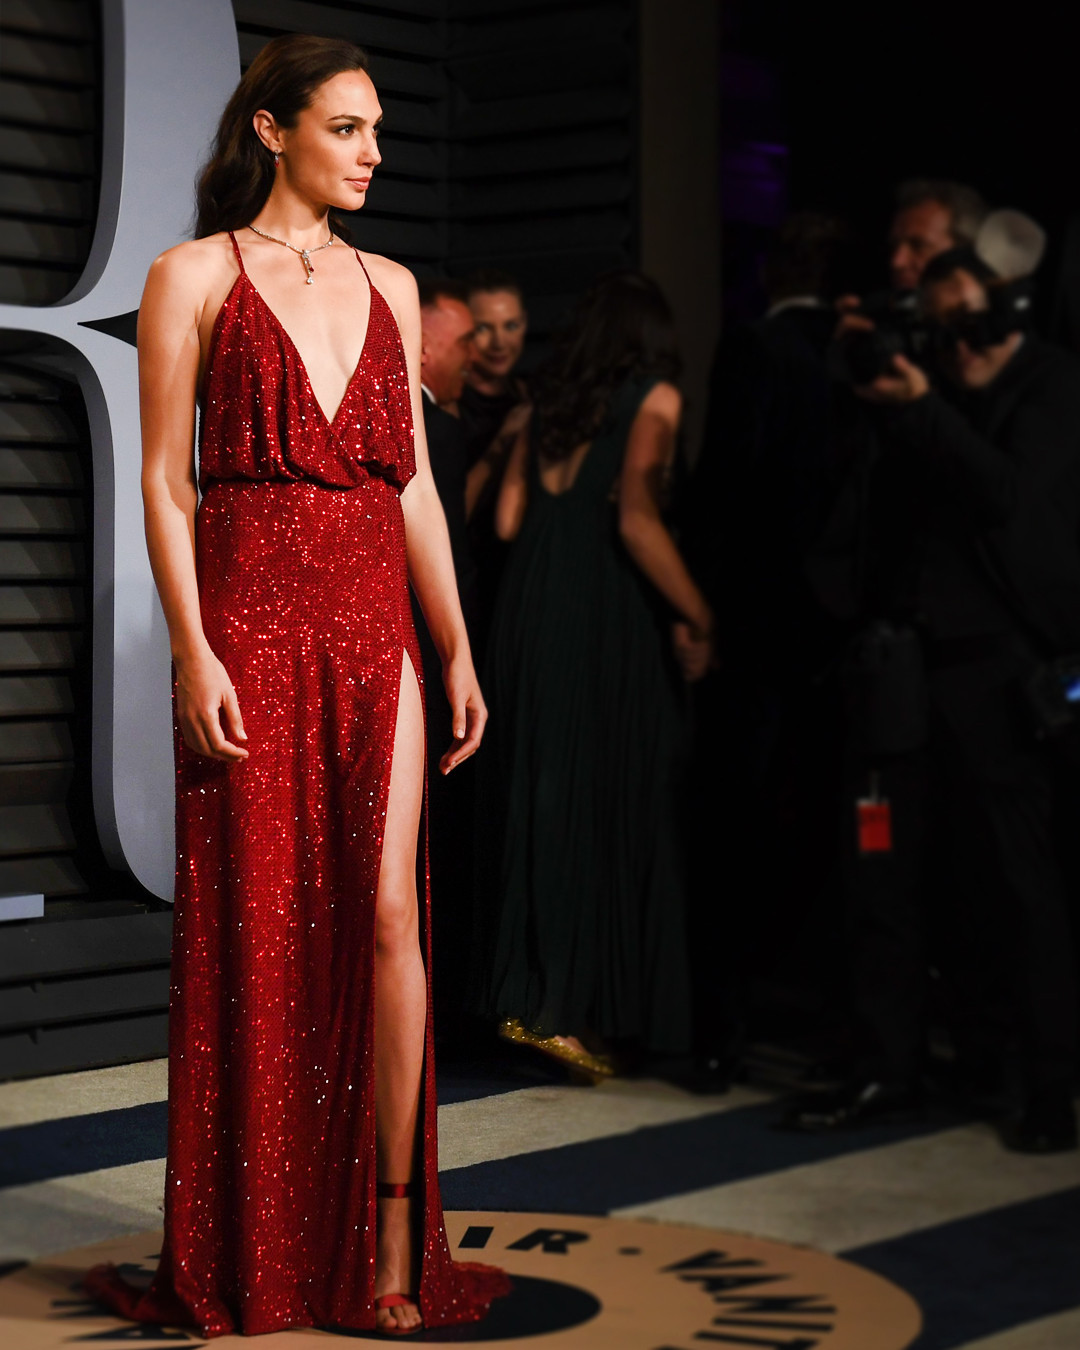 Image Result For Red Carpet After Party Dresses